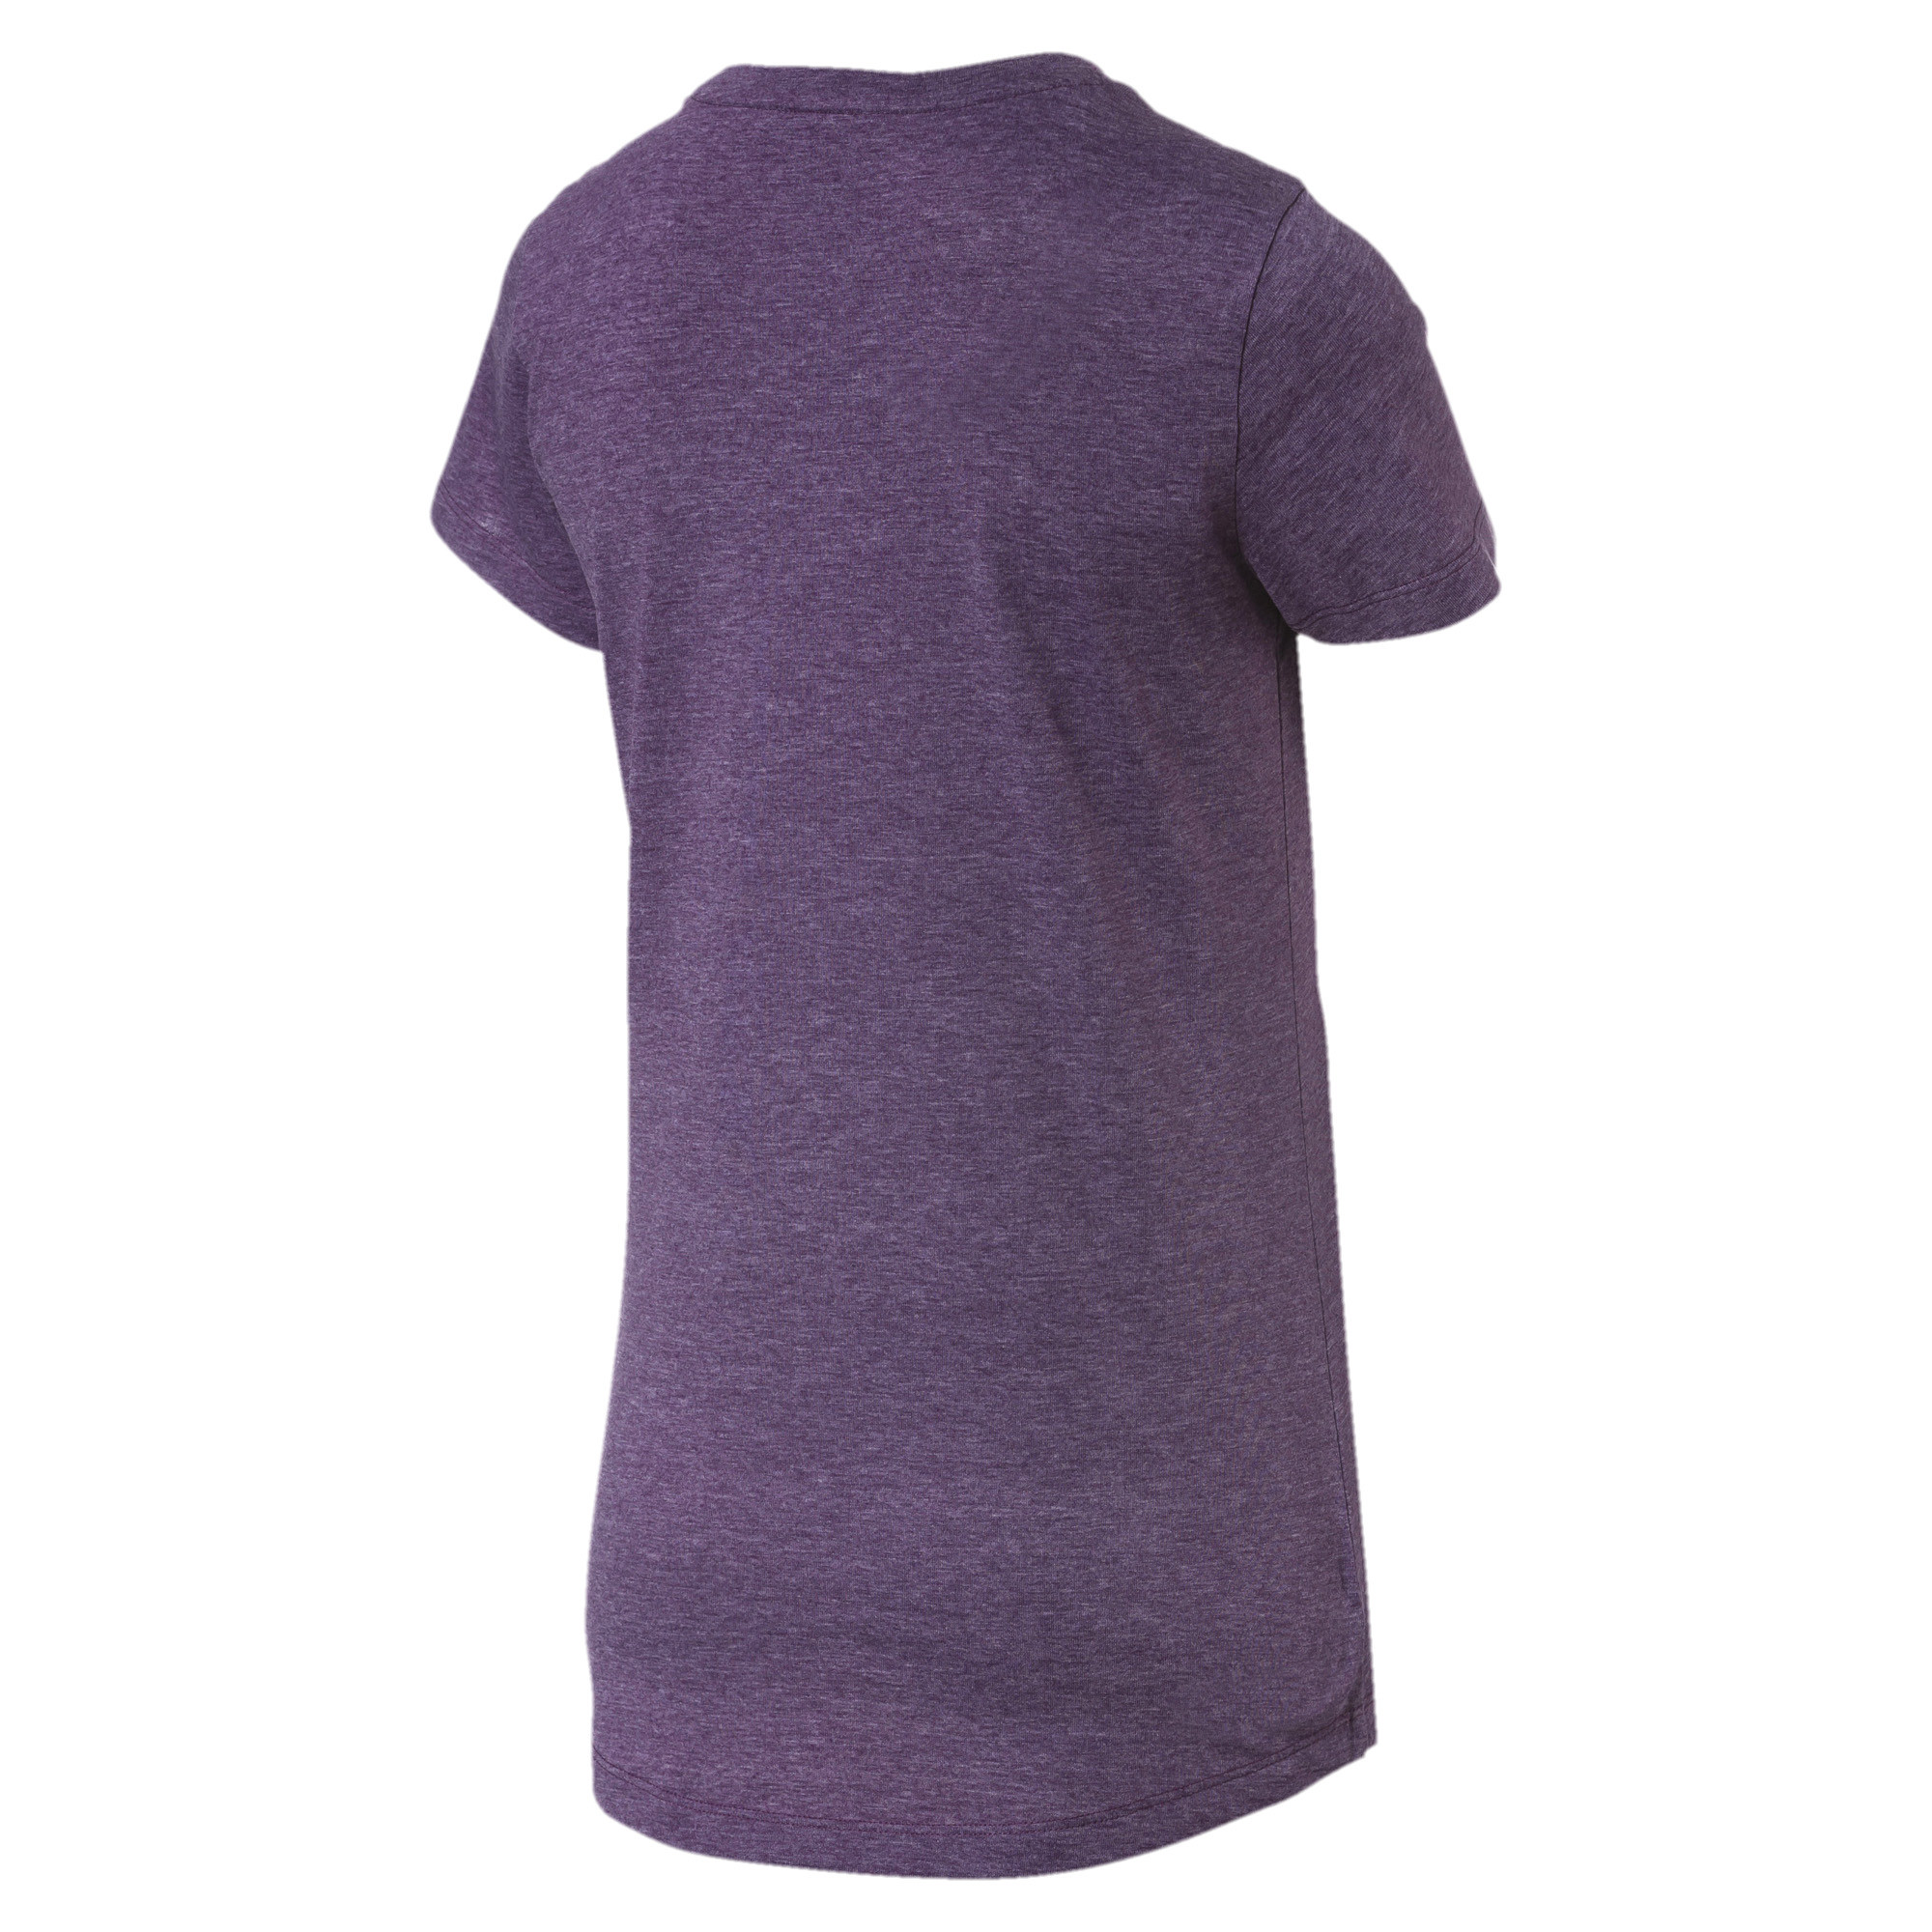 PUMA-Essentials-Women-039-s-Heather-Tee-Women-Tee-Basics thumbnail 17